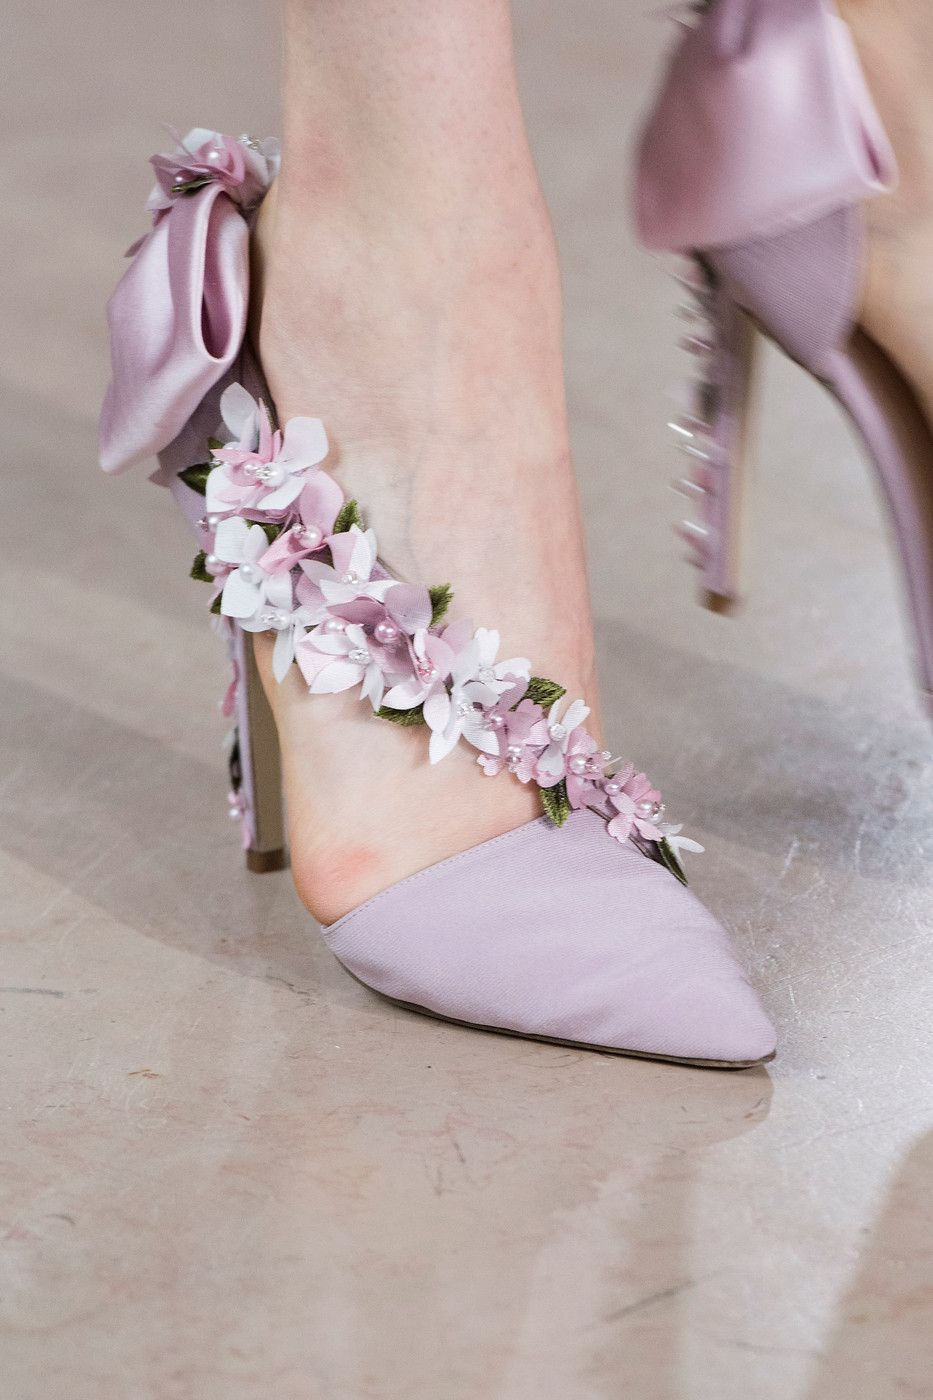 Shoes please fall 2016 haute couture and couture for Haute couture shoes